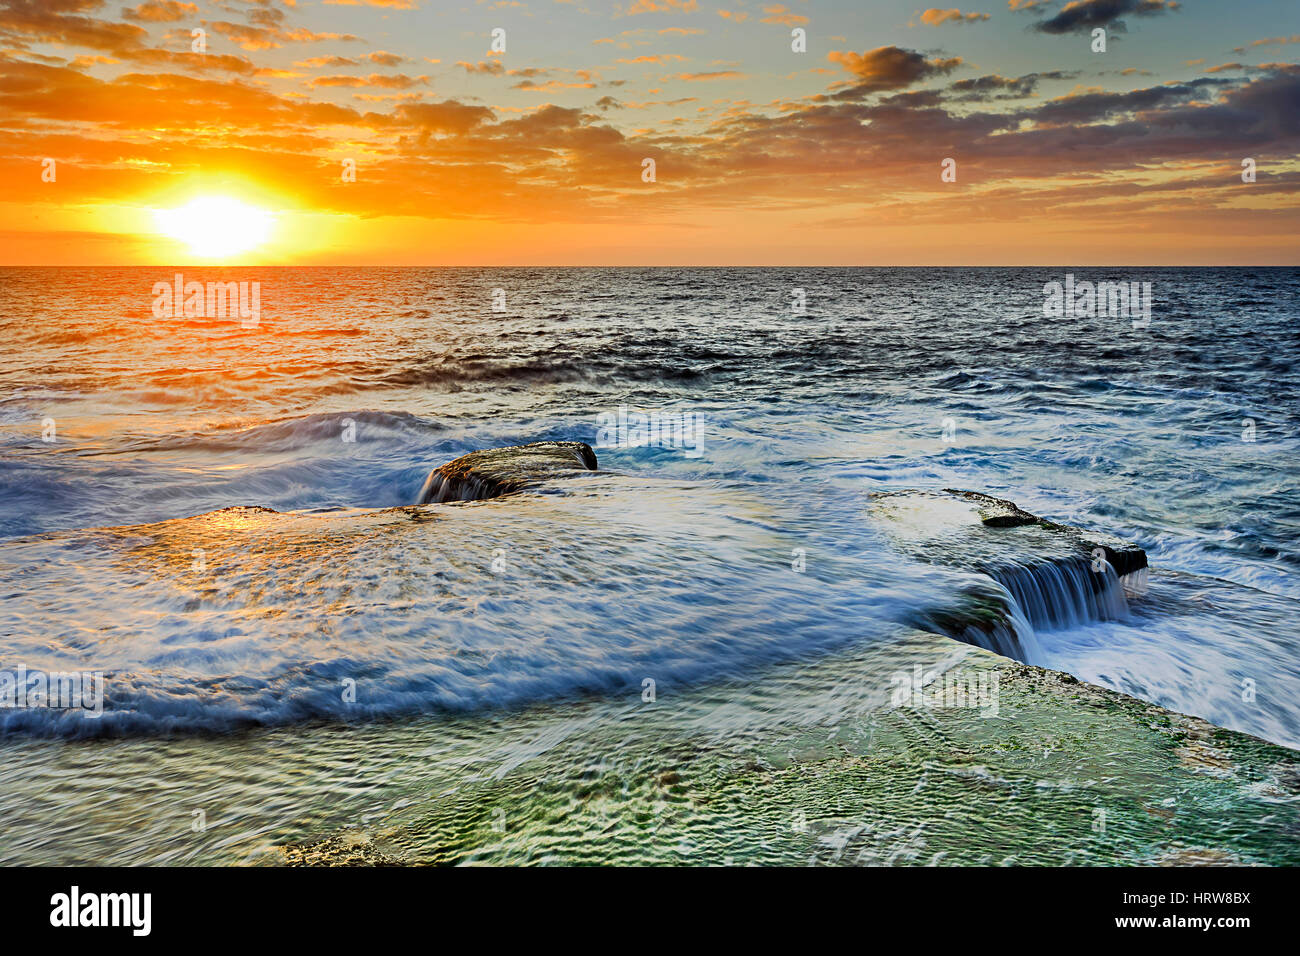 Colourful bright sunrise over horizon from Maroubra beach in Sydney. Incoming wave flows over flat coastal rocks - Stock Image